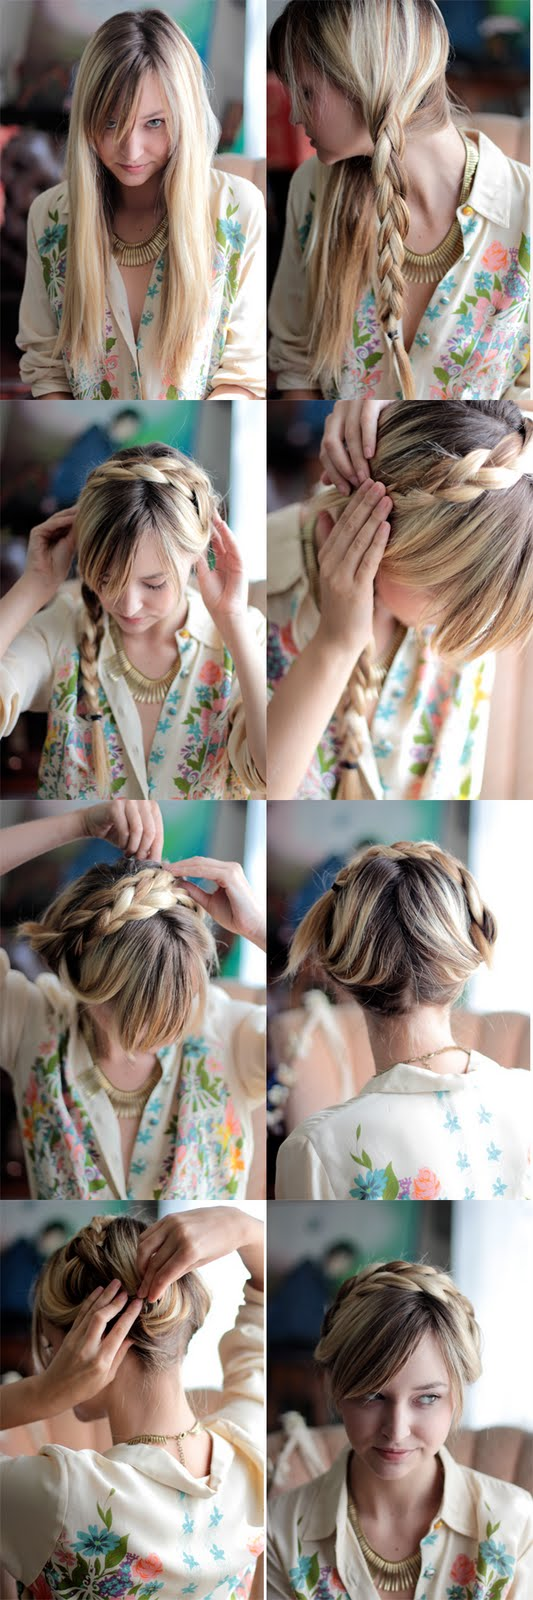 19 Lazy Girls Hairstyle Diy Ideas For All Busy Mornings